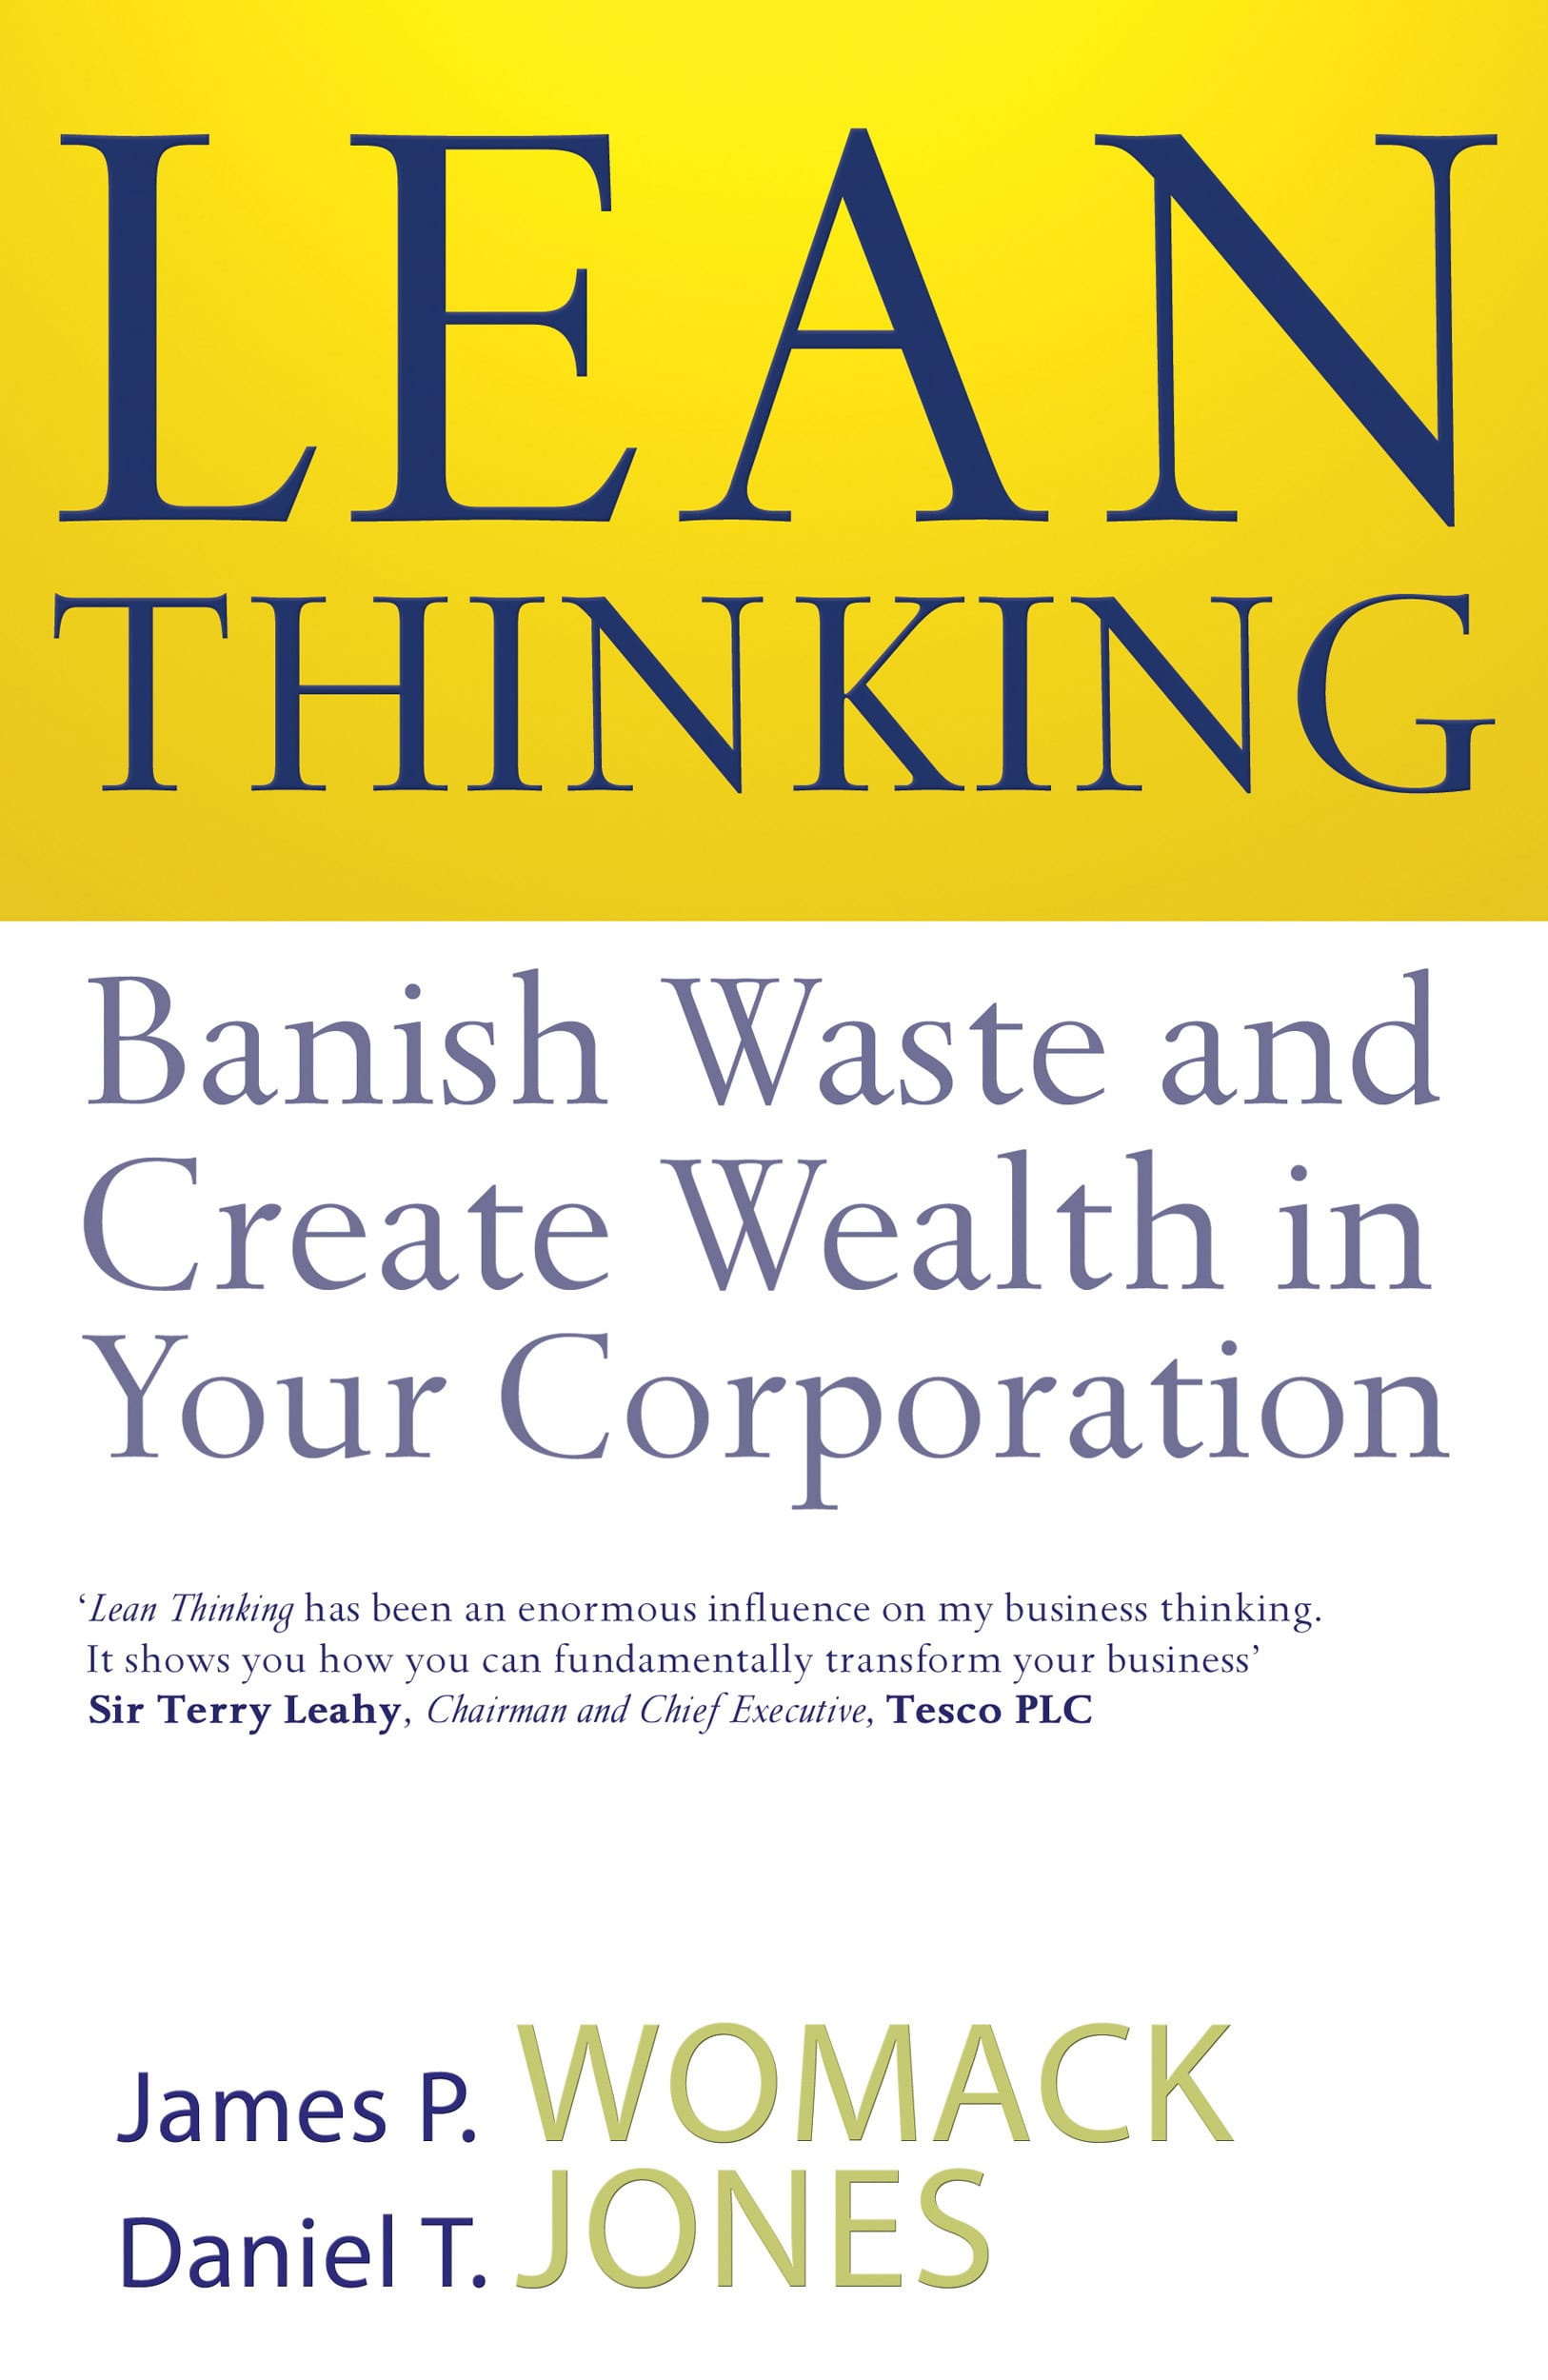 Book cover: lean thinking